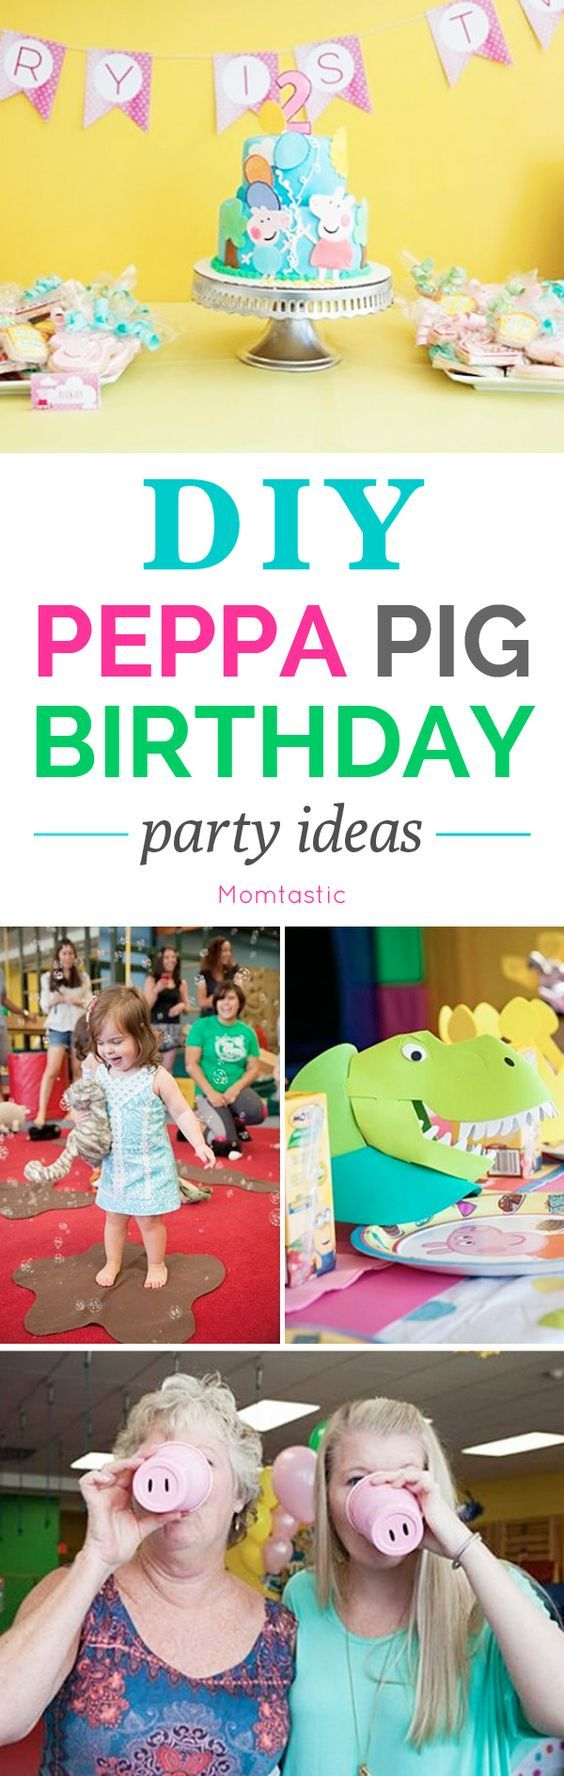 17 Best images about PEPPA PIG PARTY IDEAS on Pinterest